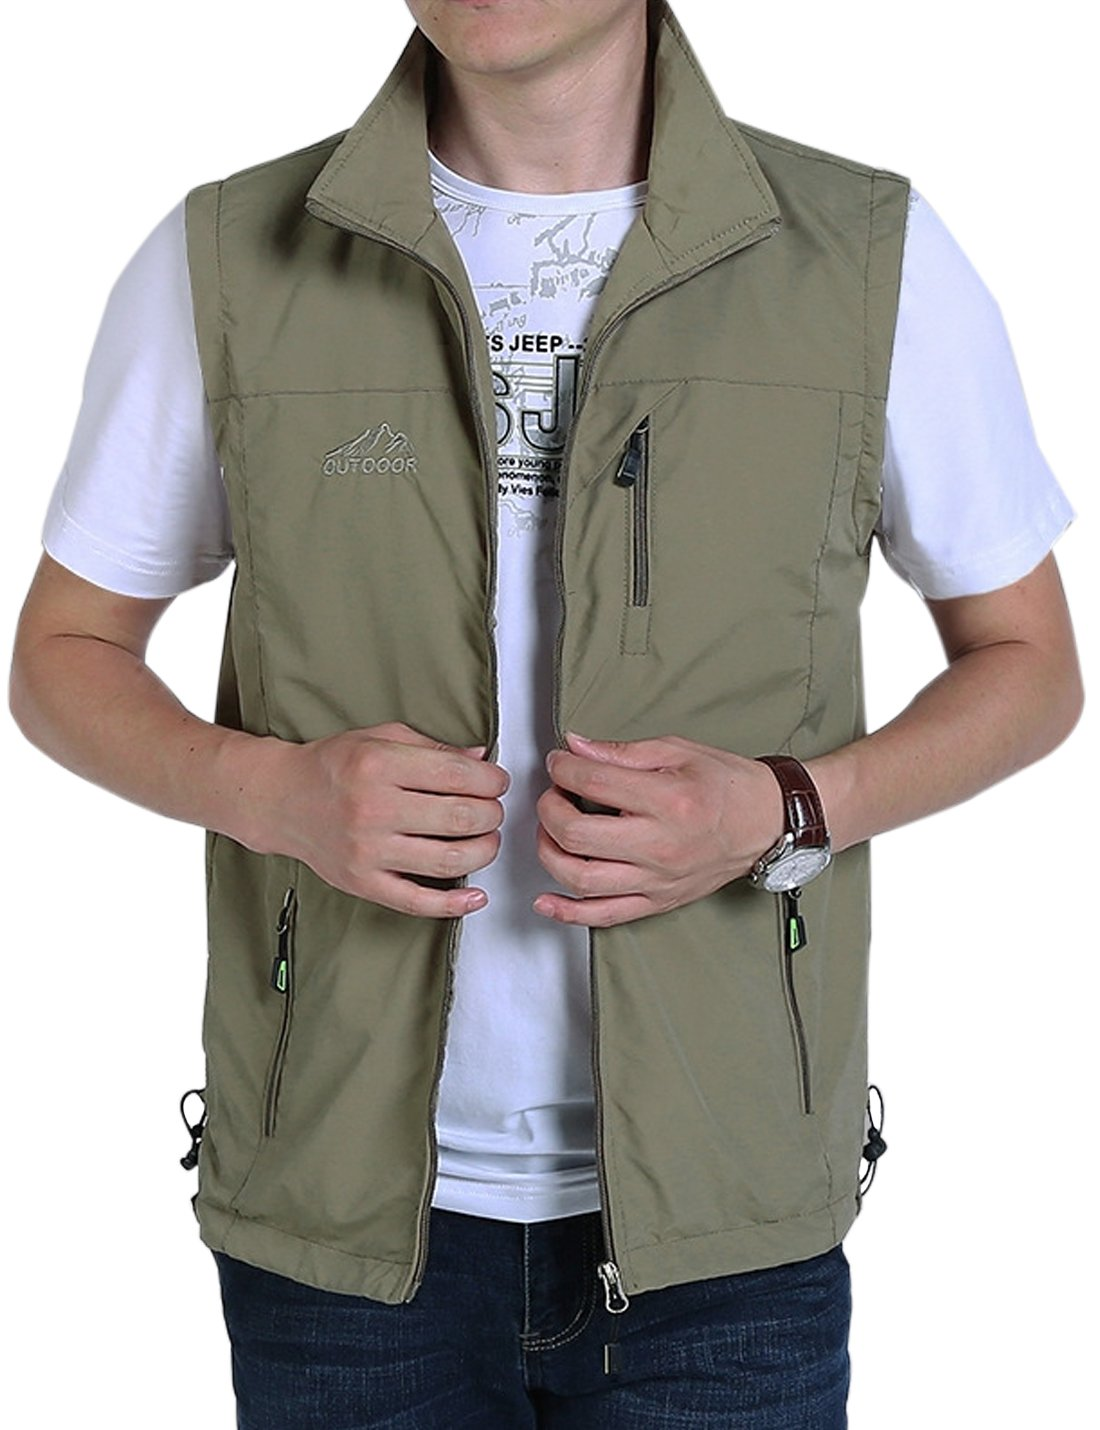 Gihuo Men's Casual Outdoor Stand Collar Lightweight Quick Dry Travel Fishing Sports Vest Outwear (Khaki, Large)